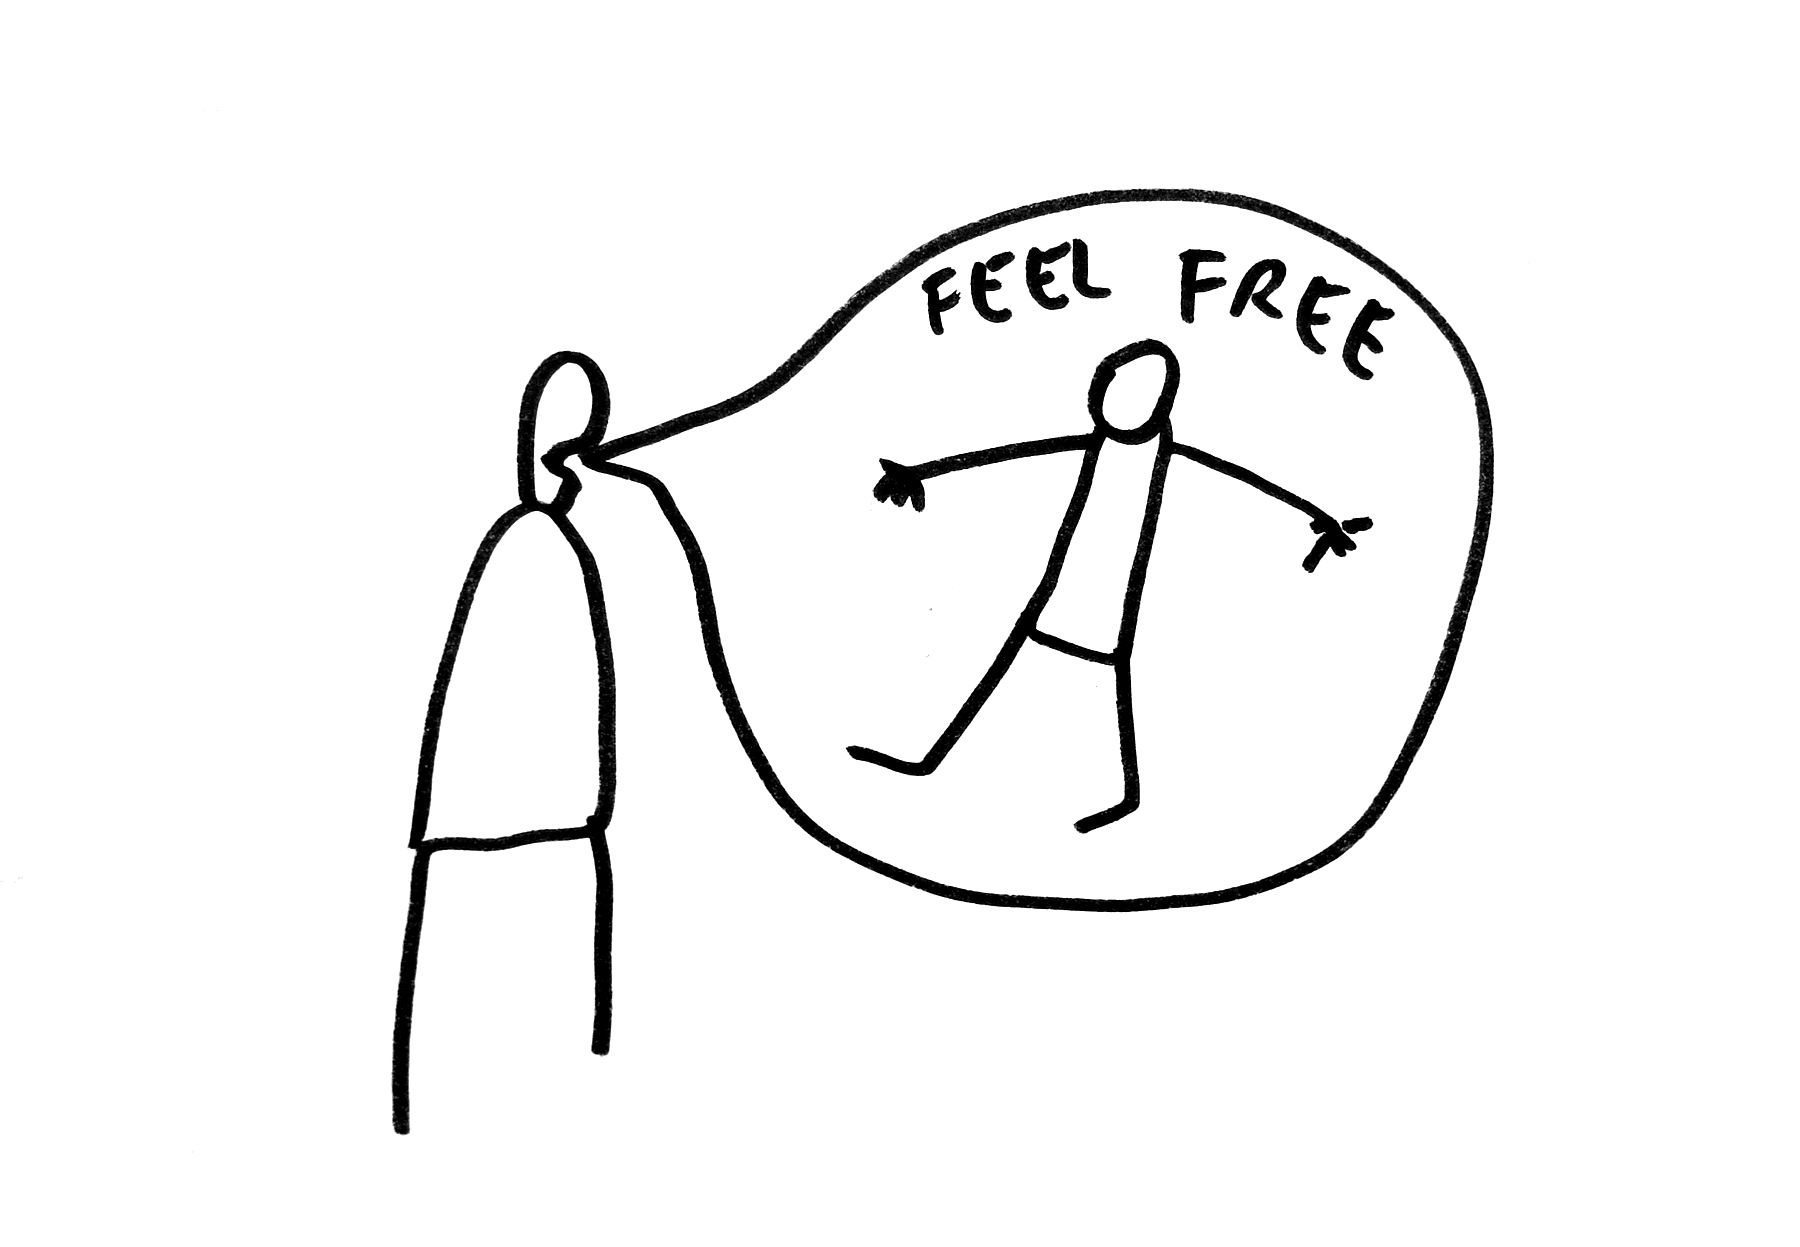 Dan Perjovschi   T Drawings (Feel Free) , 2016 Permanent marker on paper 8.25 x 11.5 inches 21 x 29.2 cm